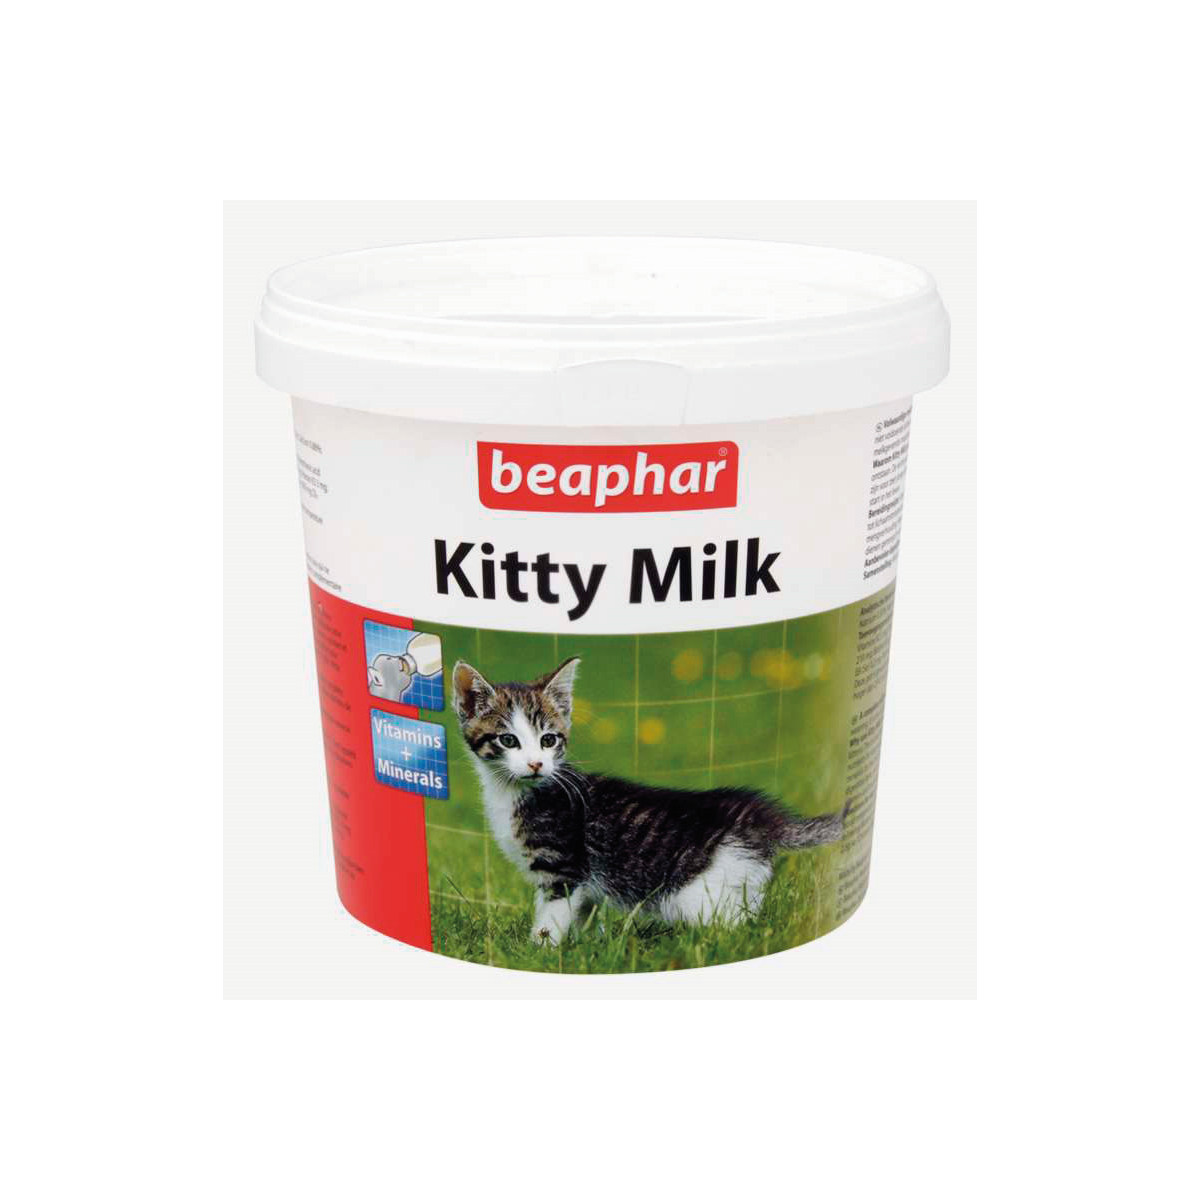 Beaphar - kitty milk meerkleurig 500 gr